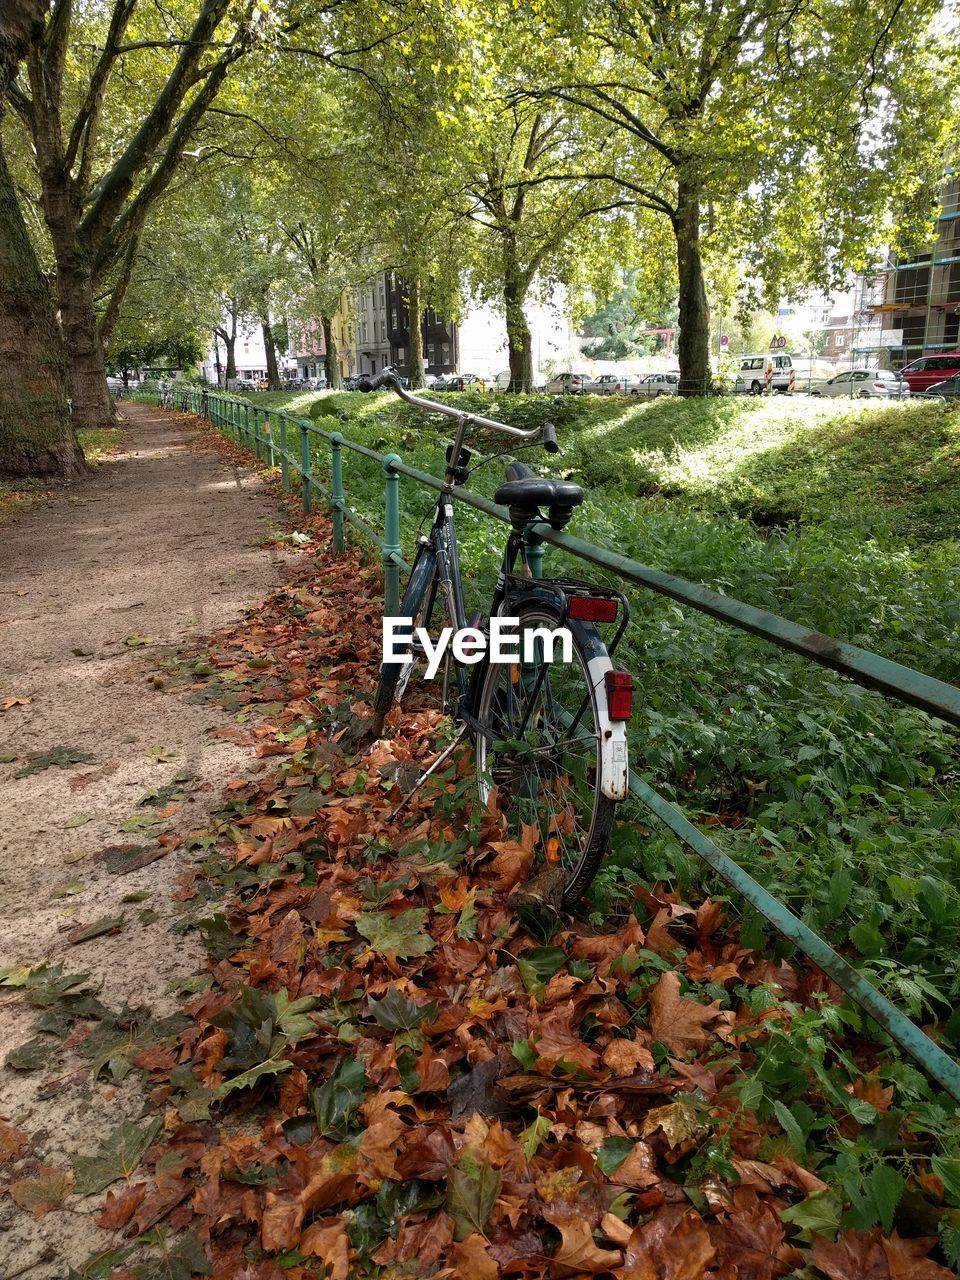 tree, leaf, plant, bicycle, plant part, autumn, transportation, nature, day, park, mode of transportation, land, no people, change, park - man made space, tree trunk, falling, trunk, land vehicle, footpath, outdoors, leaves